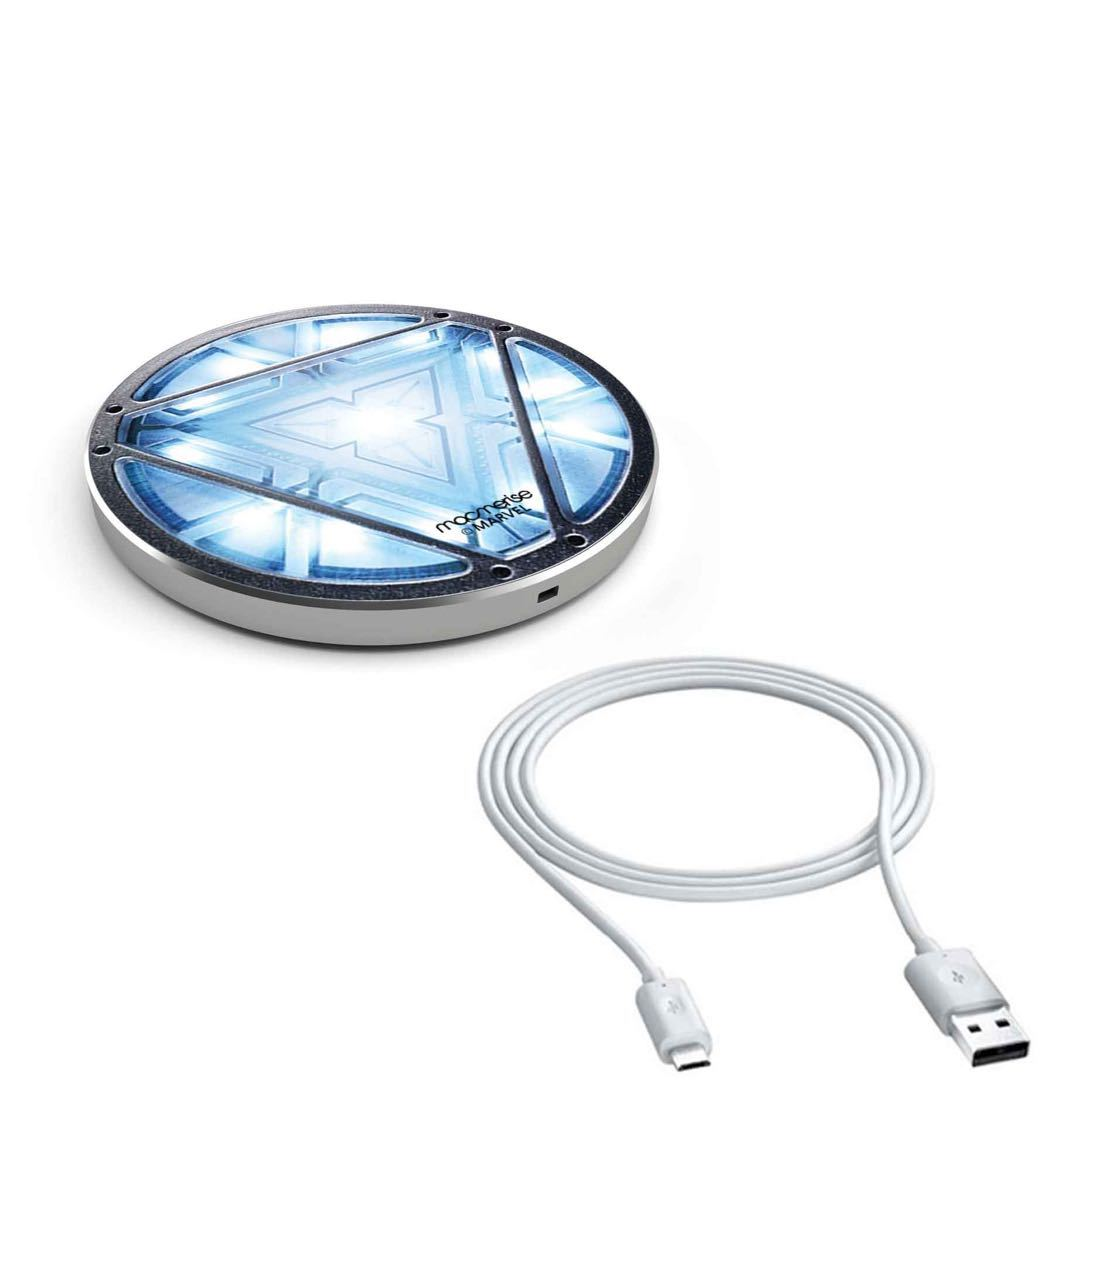 Iron Man Arc Reactor QI compatable Wireless Charger by Macmerise